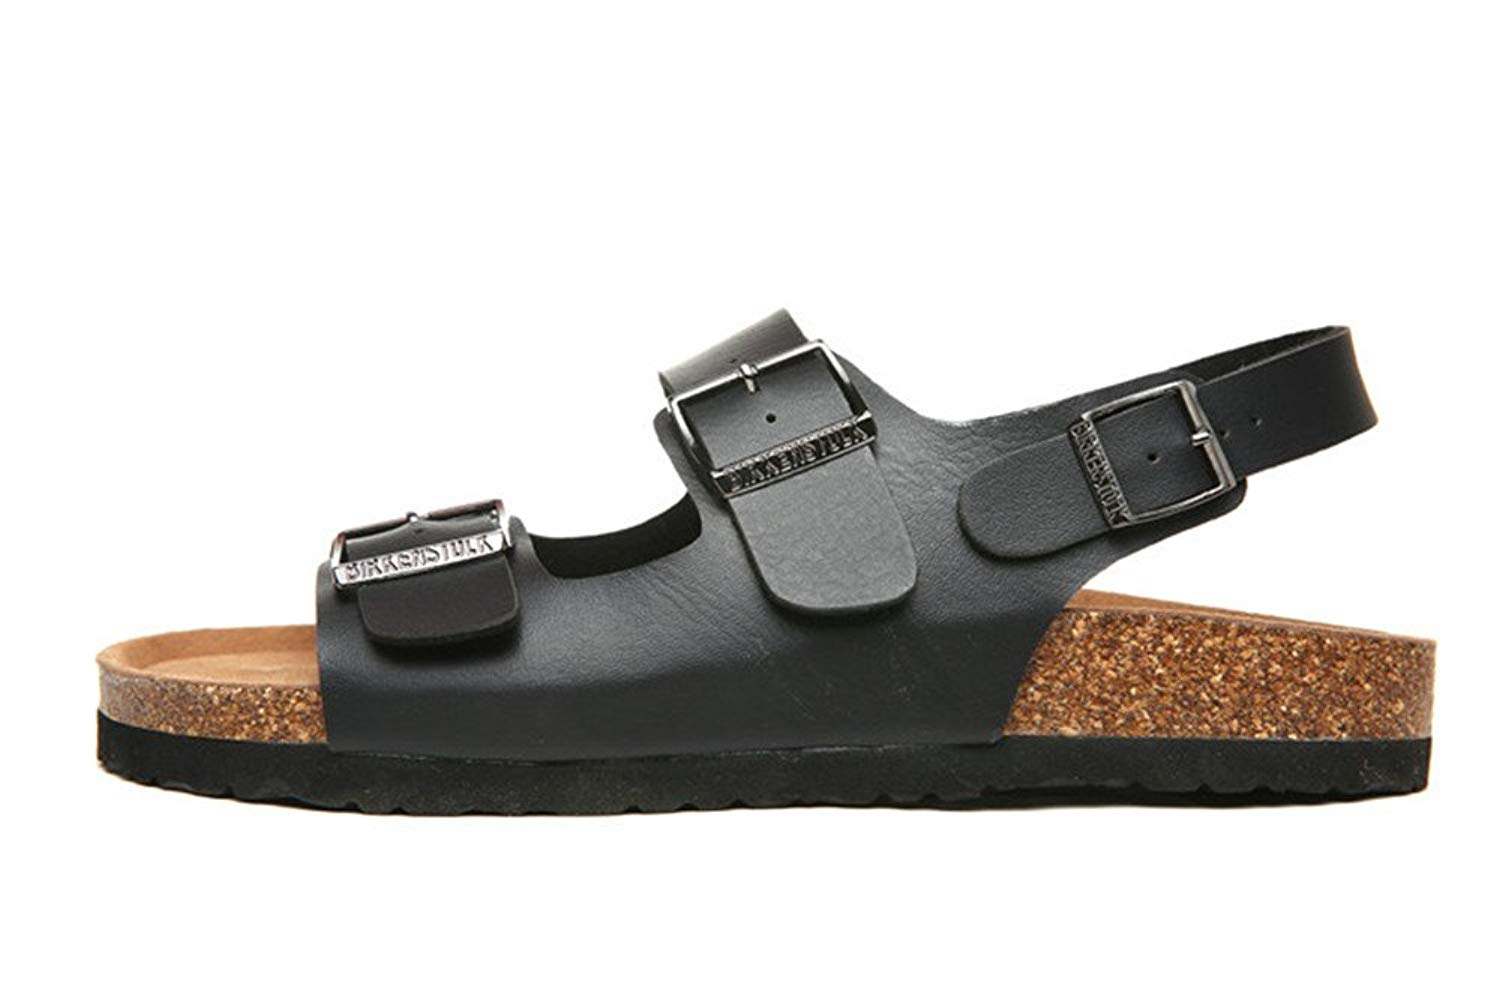 f37d9d6cdb102b Get Quotations · Men Multi-Strap Cork Flip Flop Casual